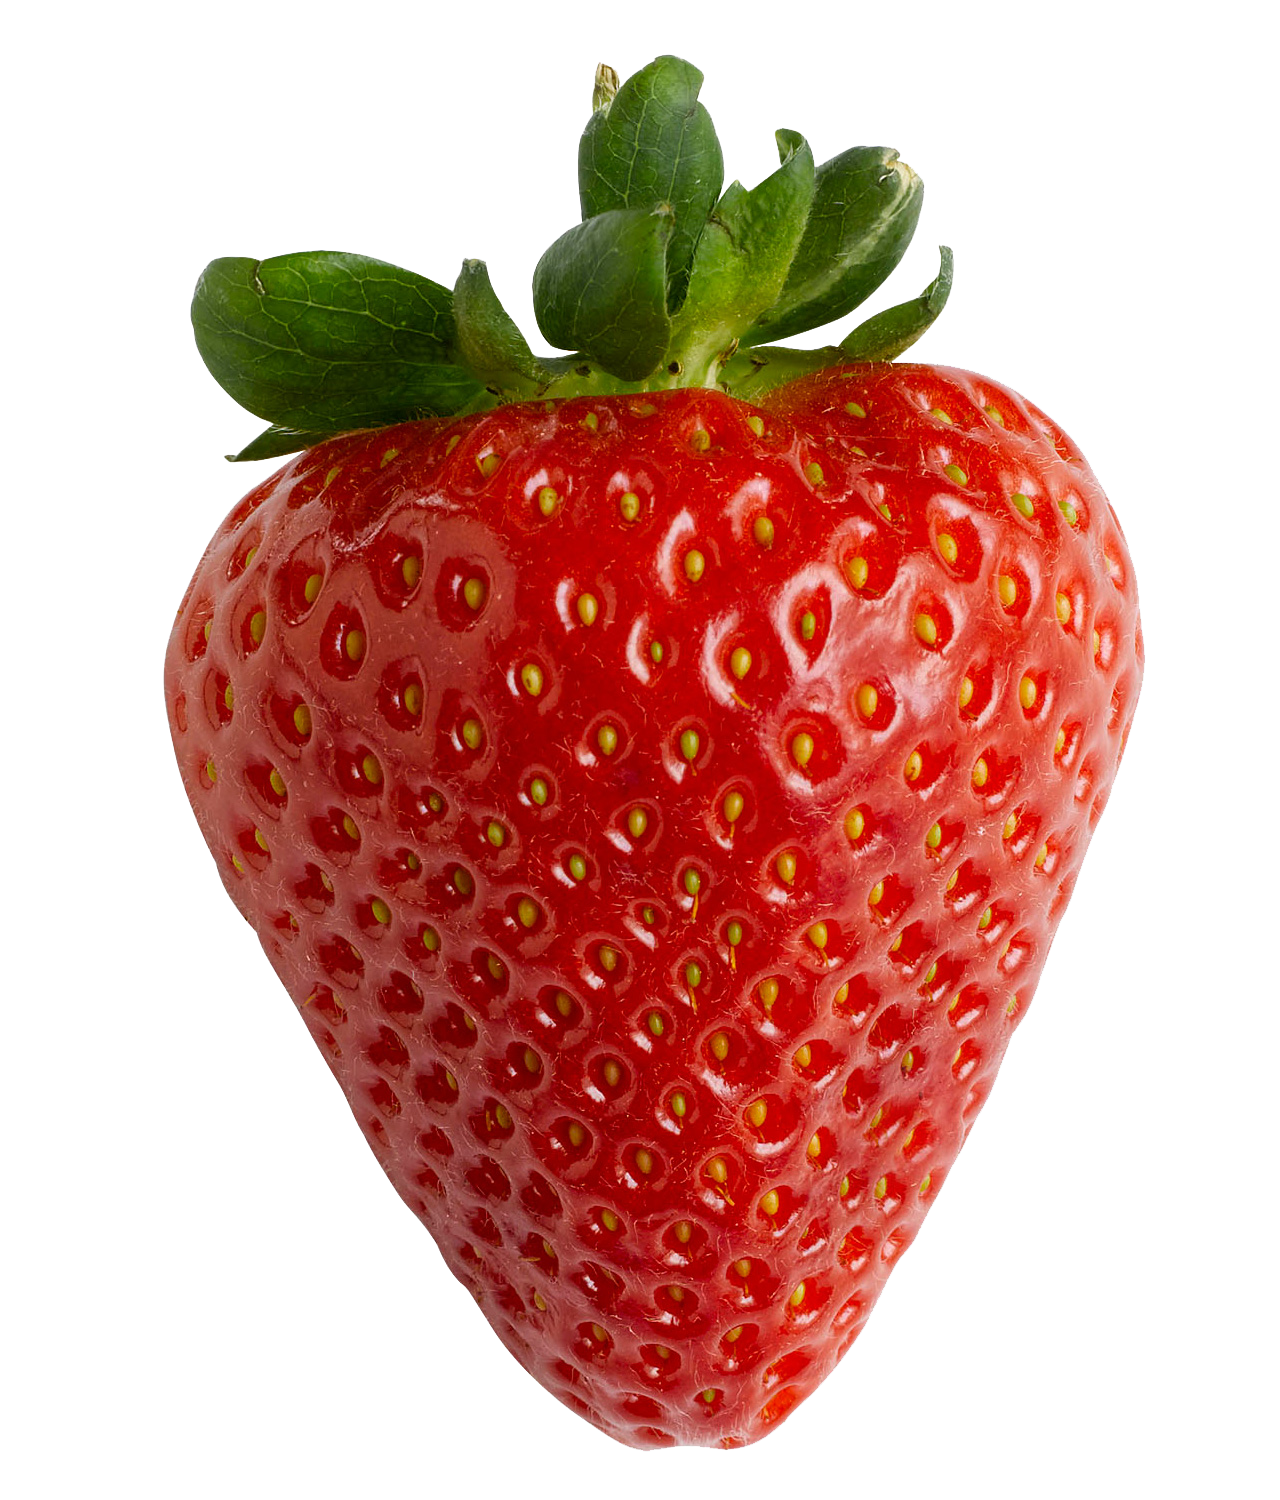 Strawberry png. Images transparent free download